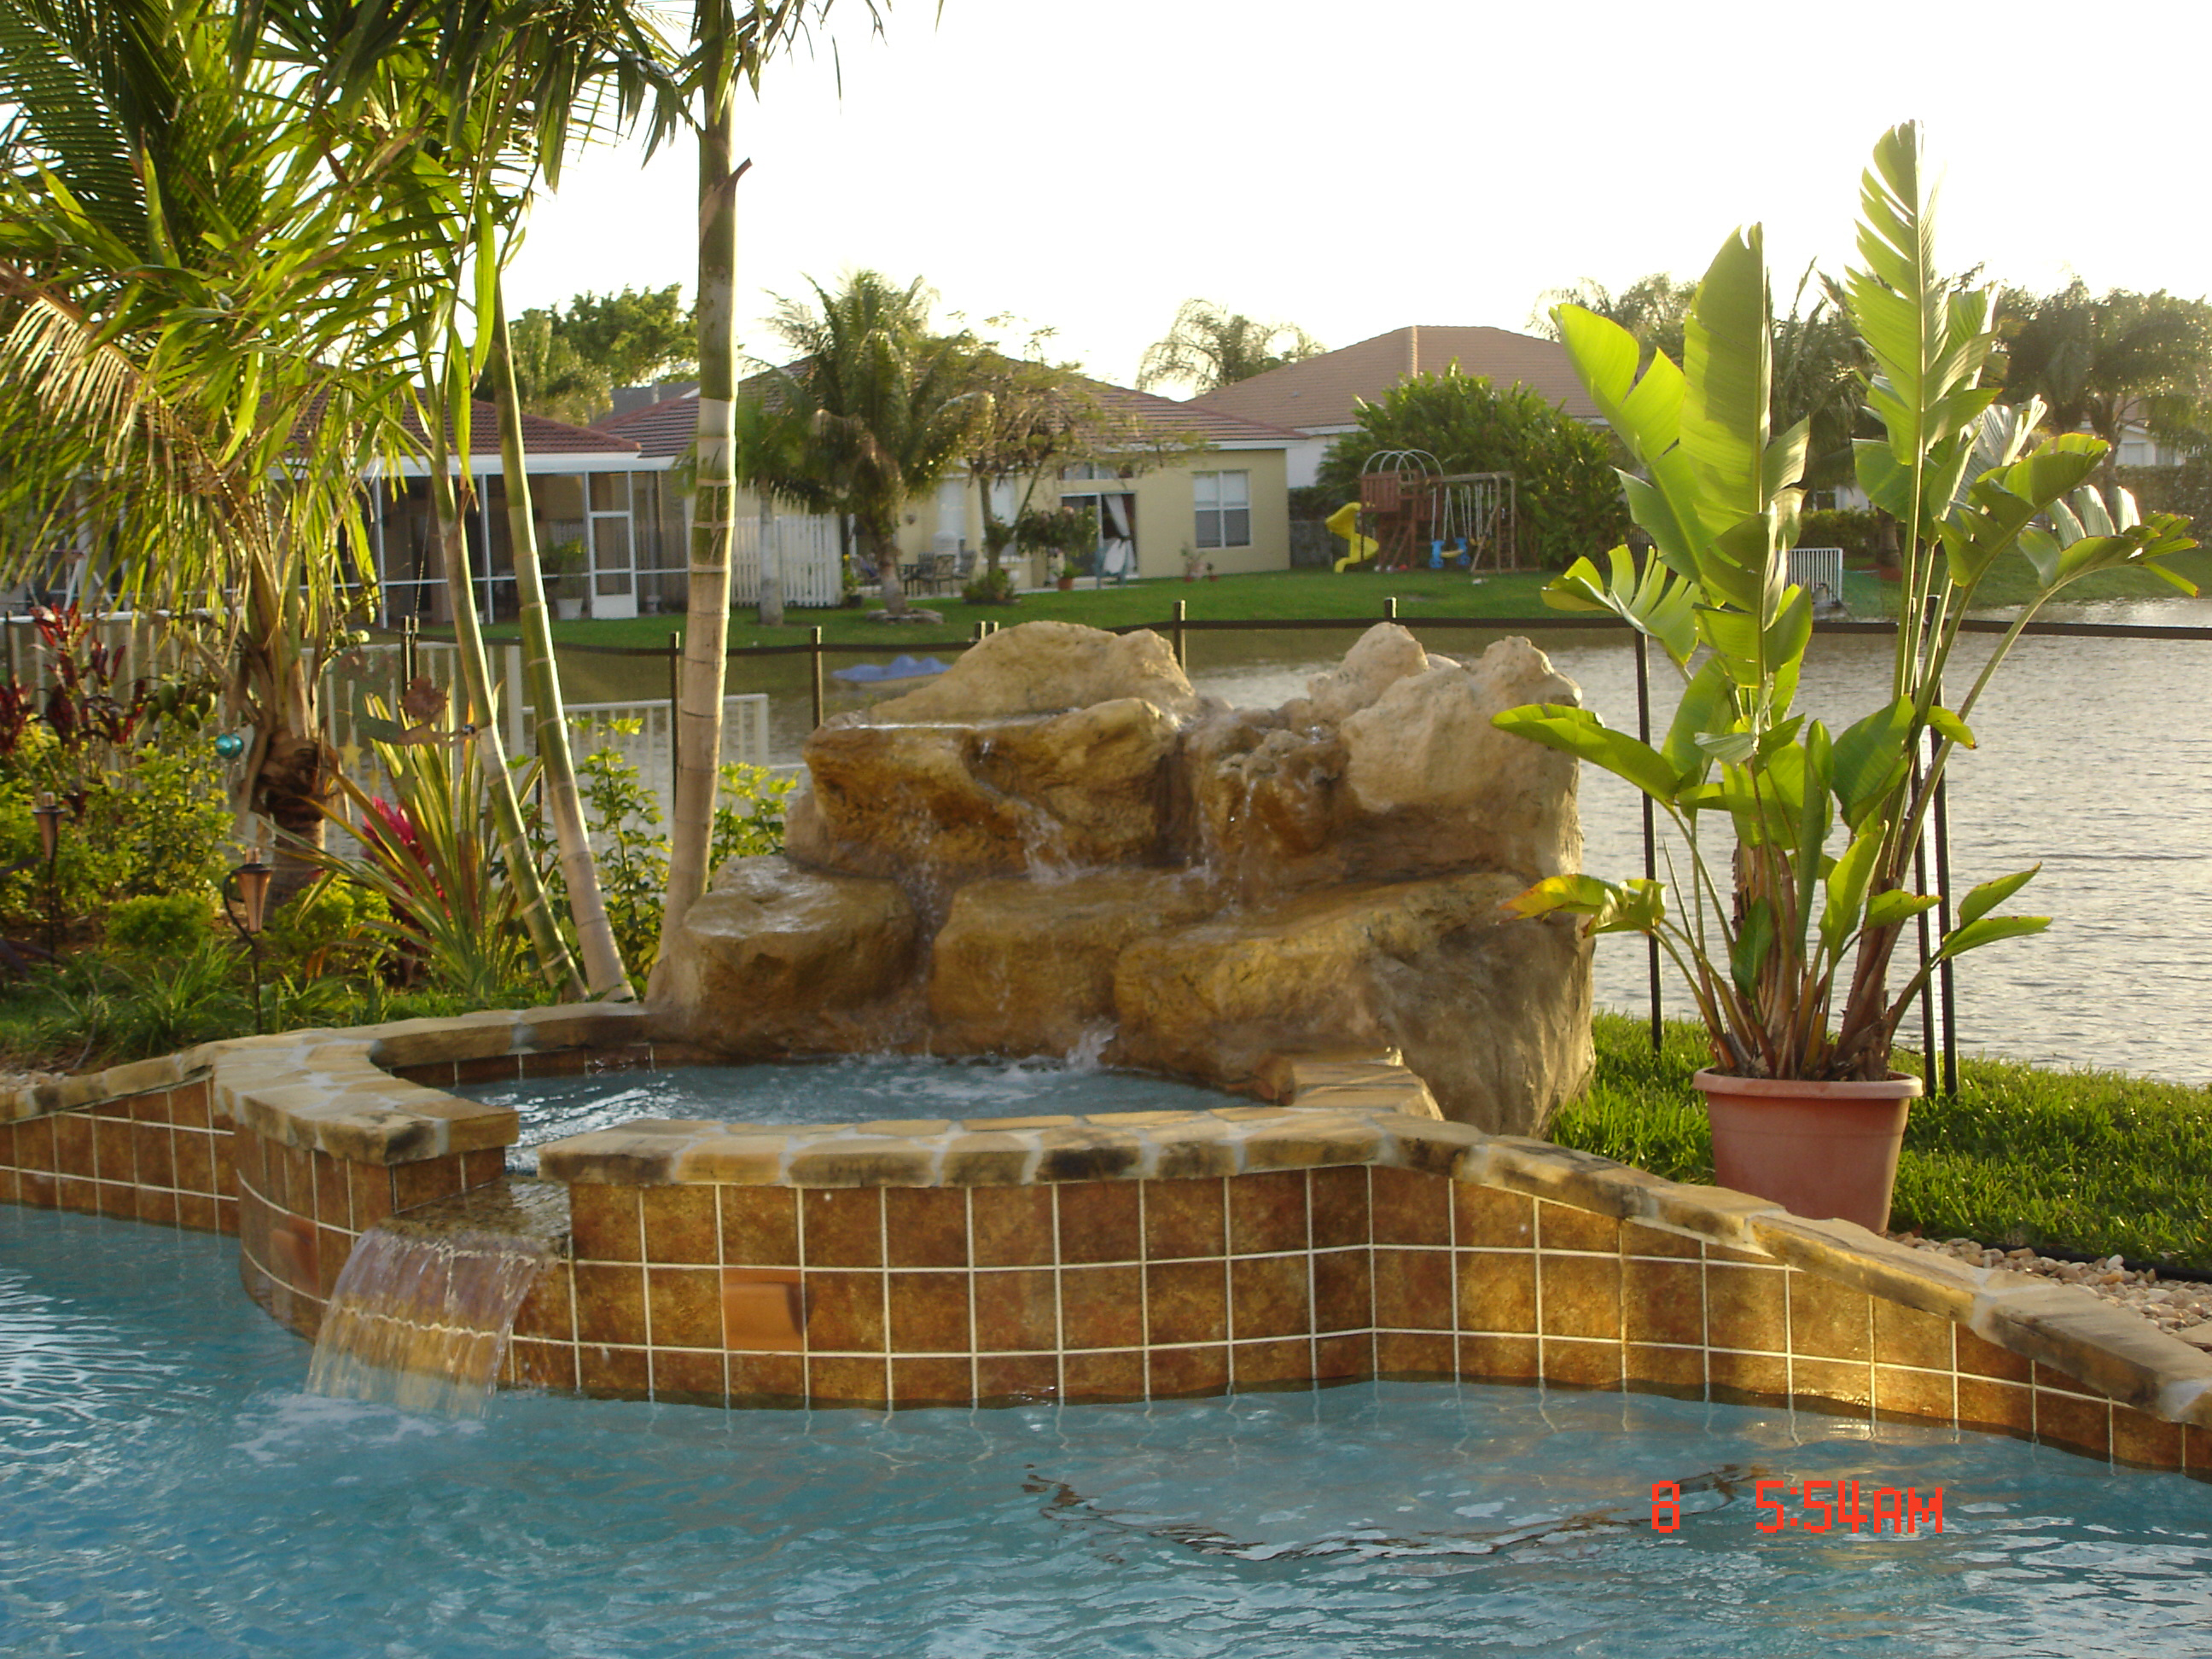 Pool specialist inc swimming pool supply store palm - Swimming pool specialist malaysia ...